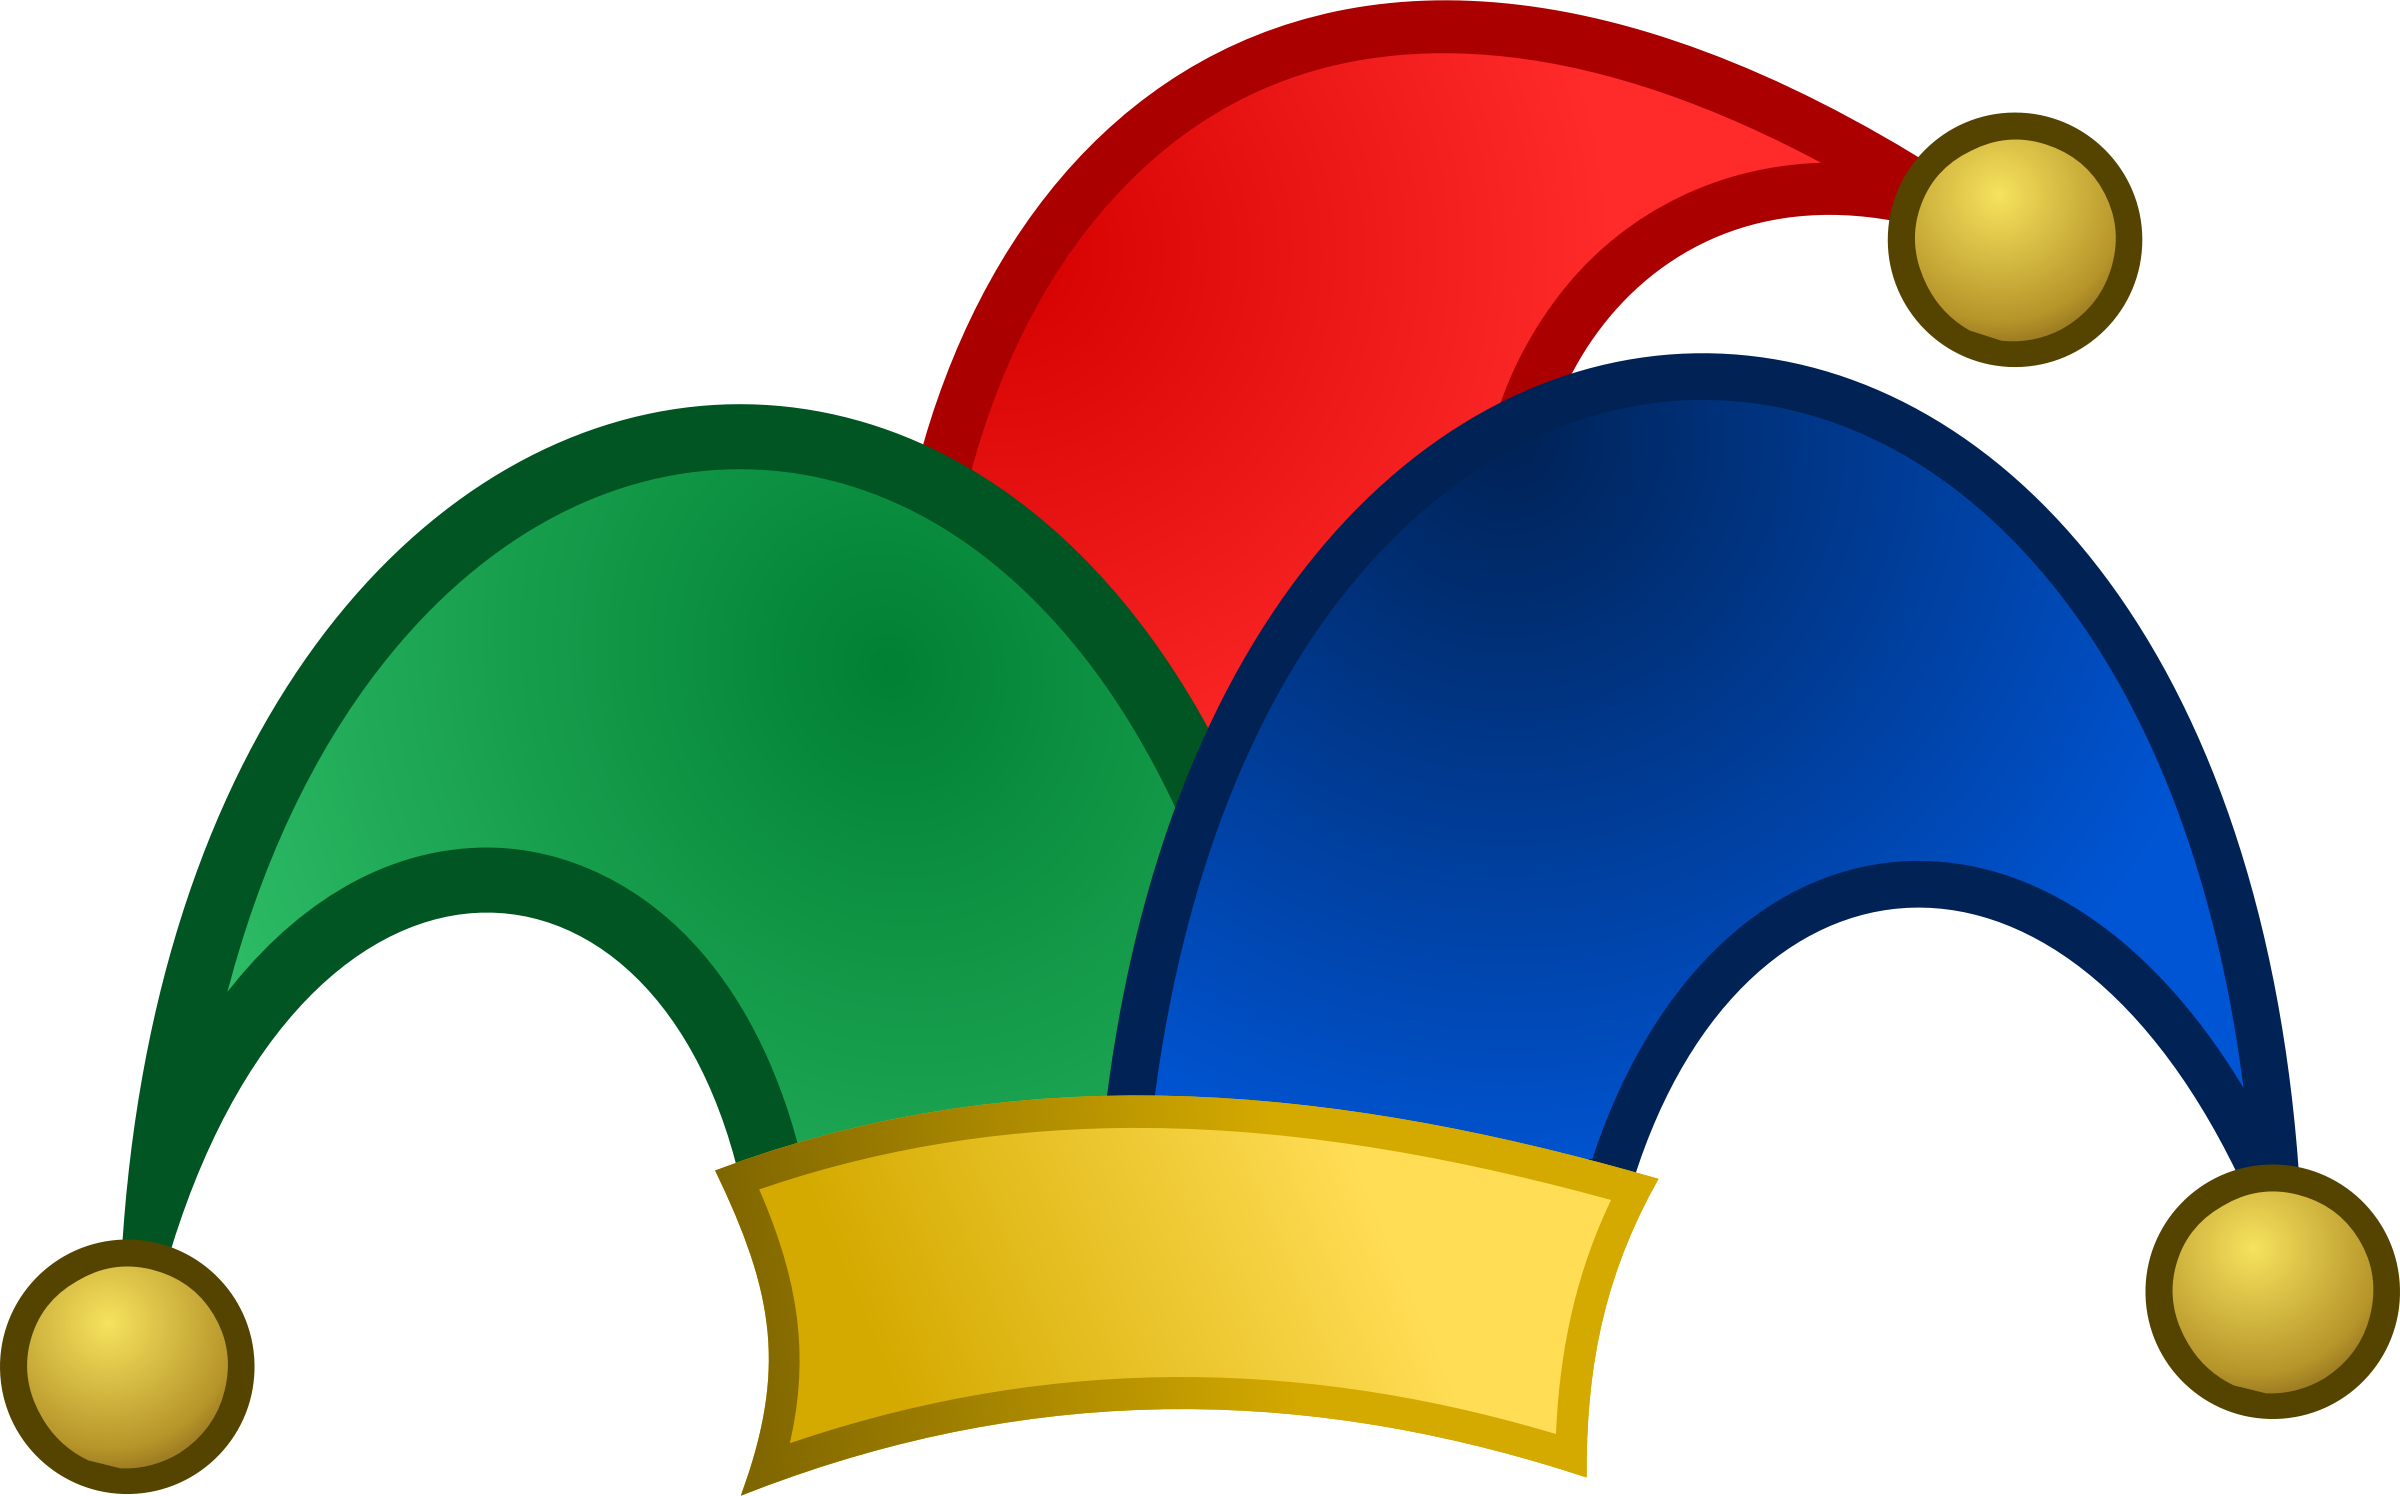 Jester Hat Clipart - Clipart Suggest